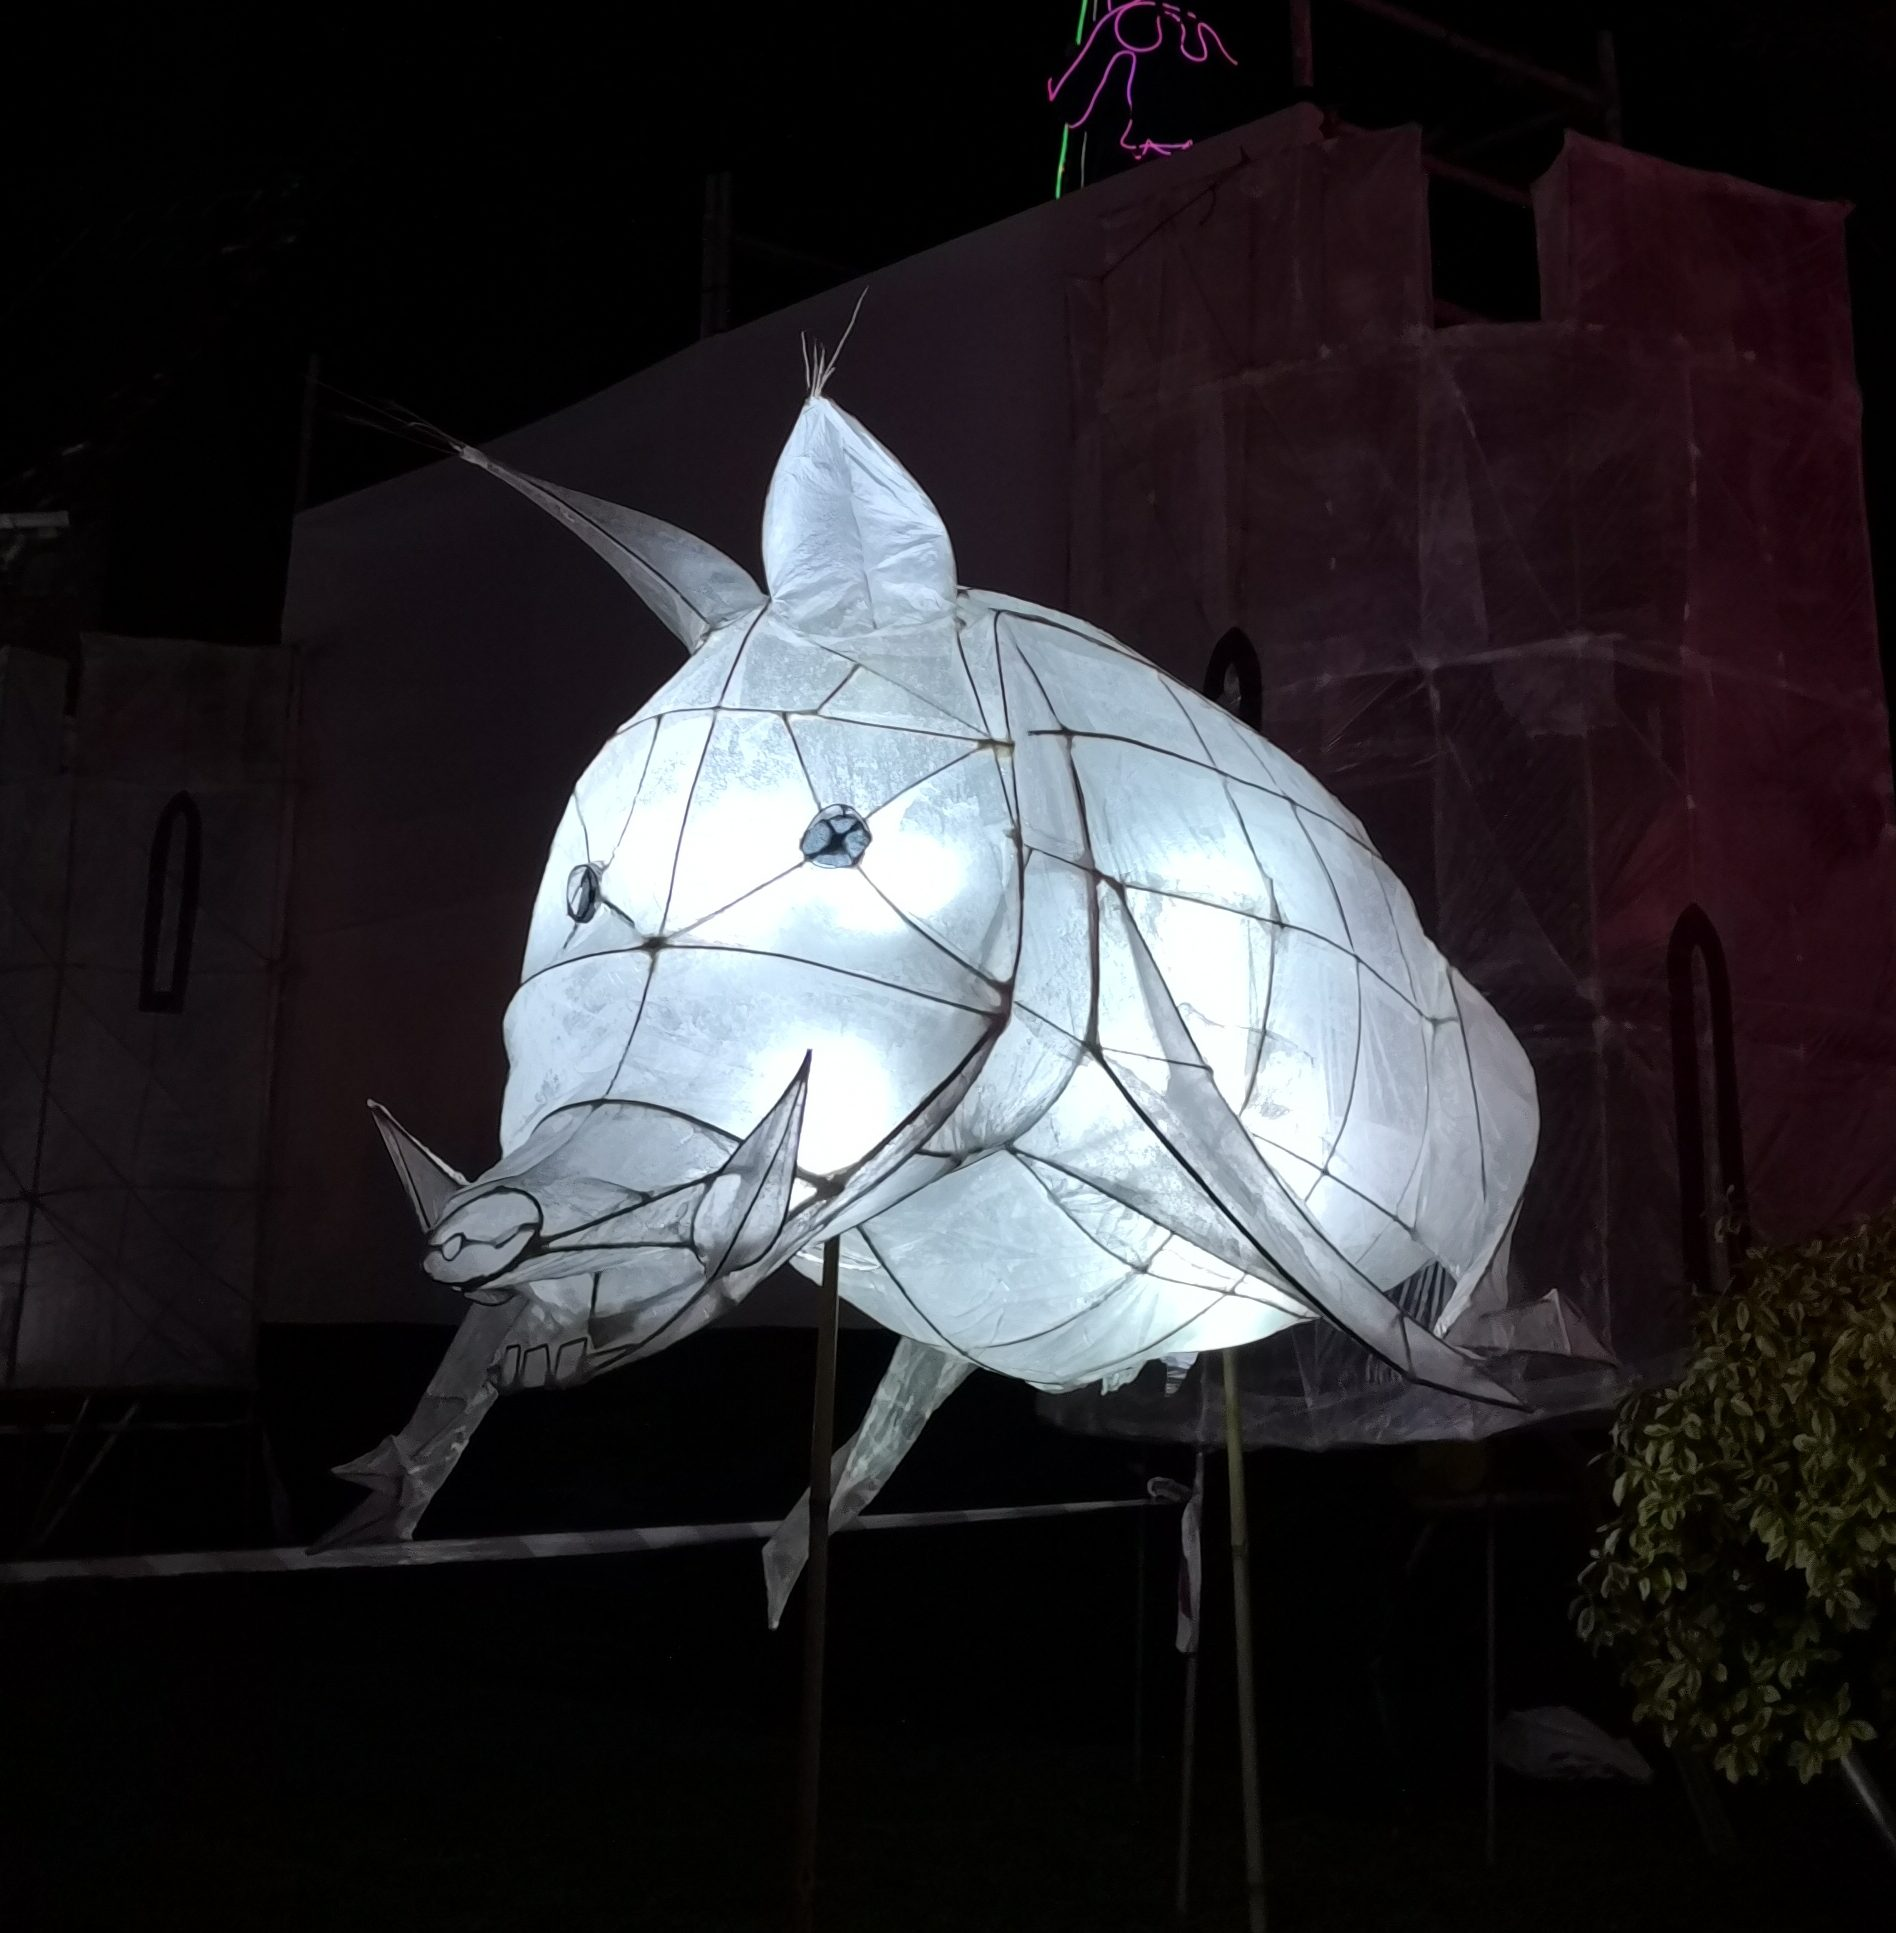 Lantern in the shape of a wild boar